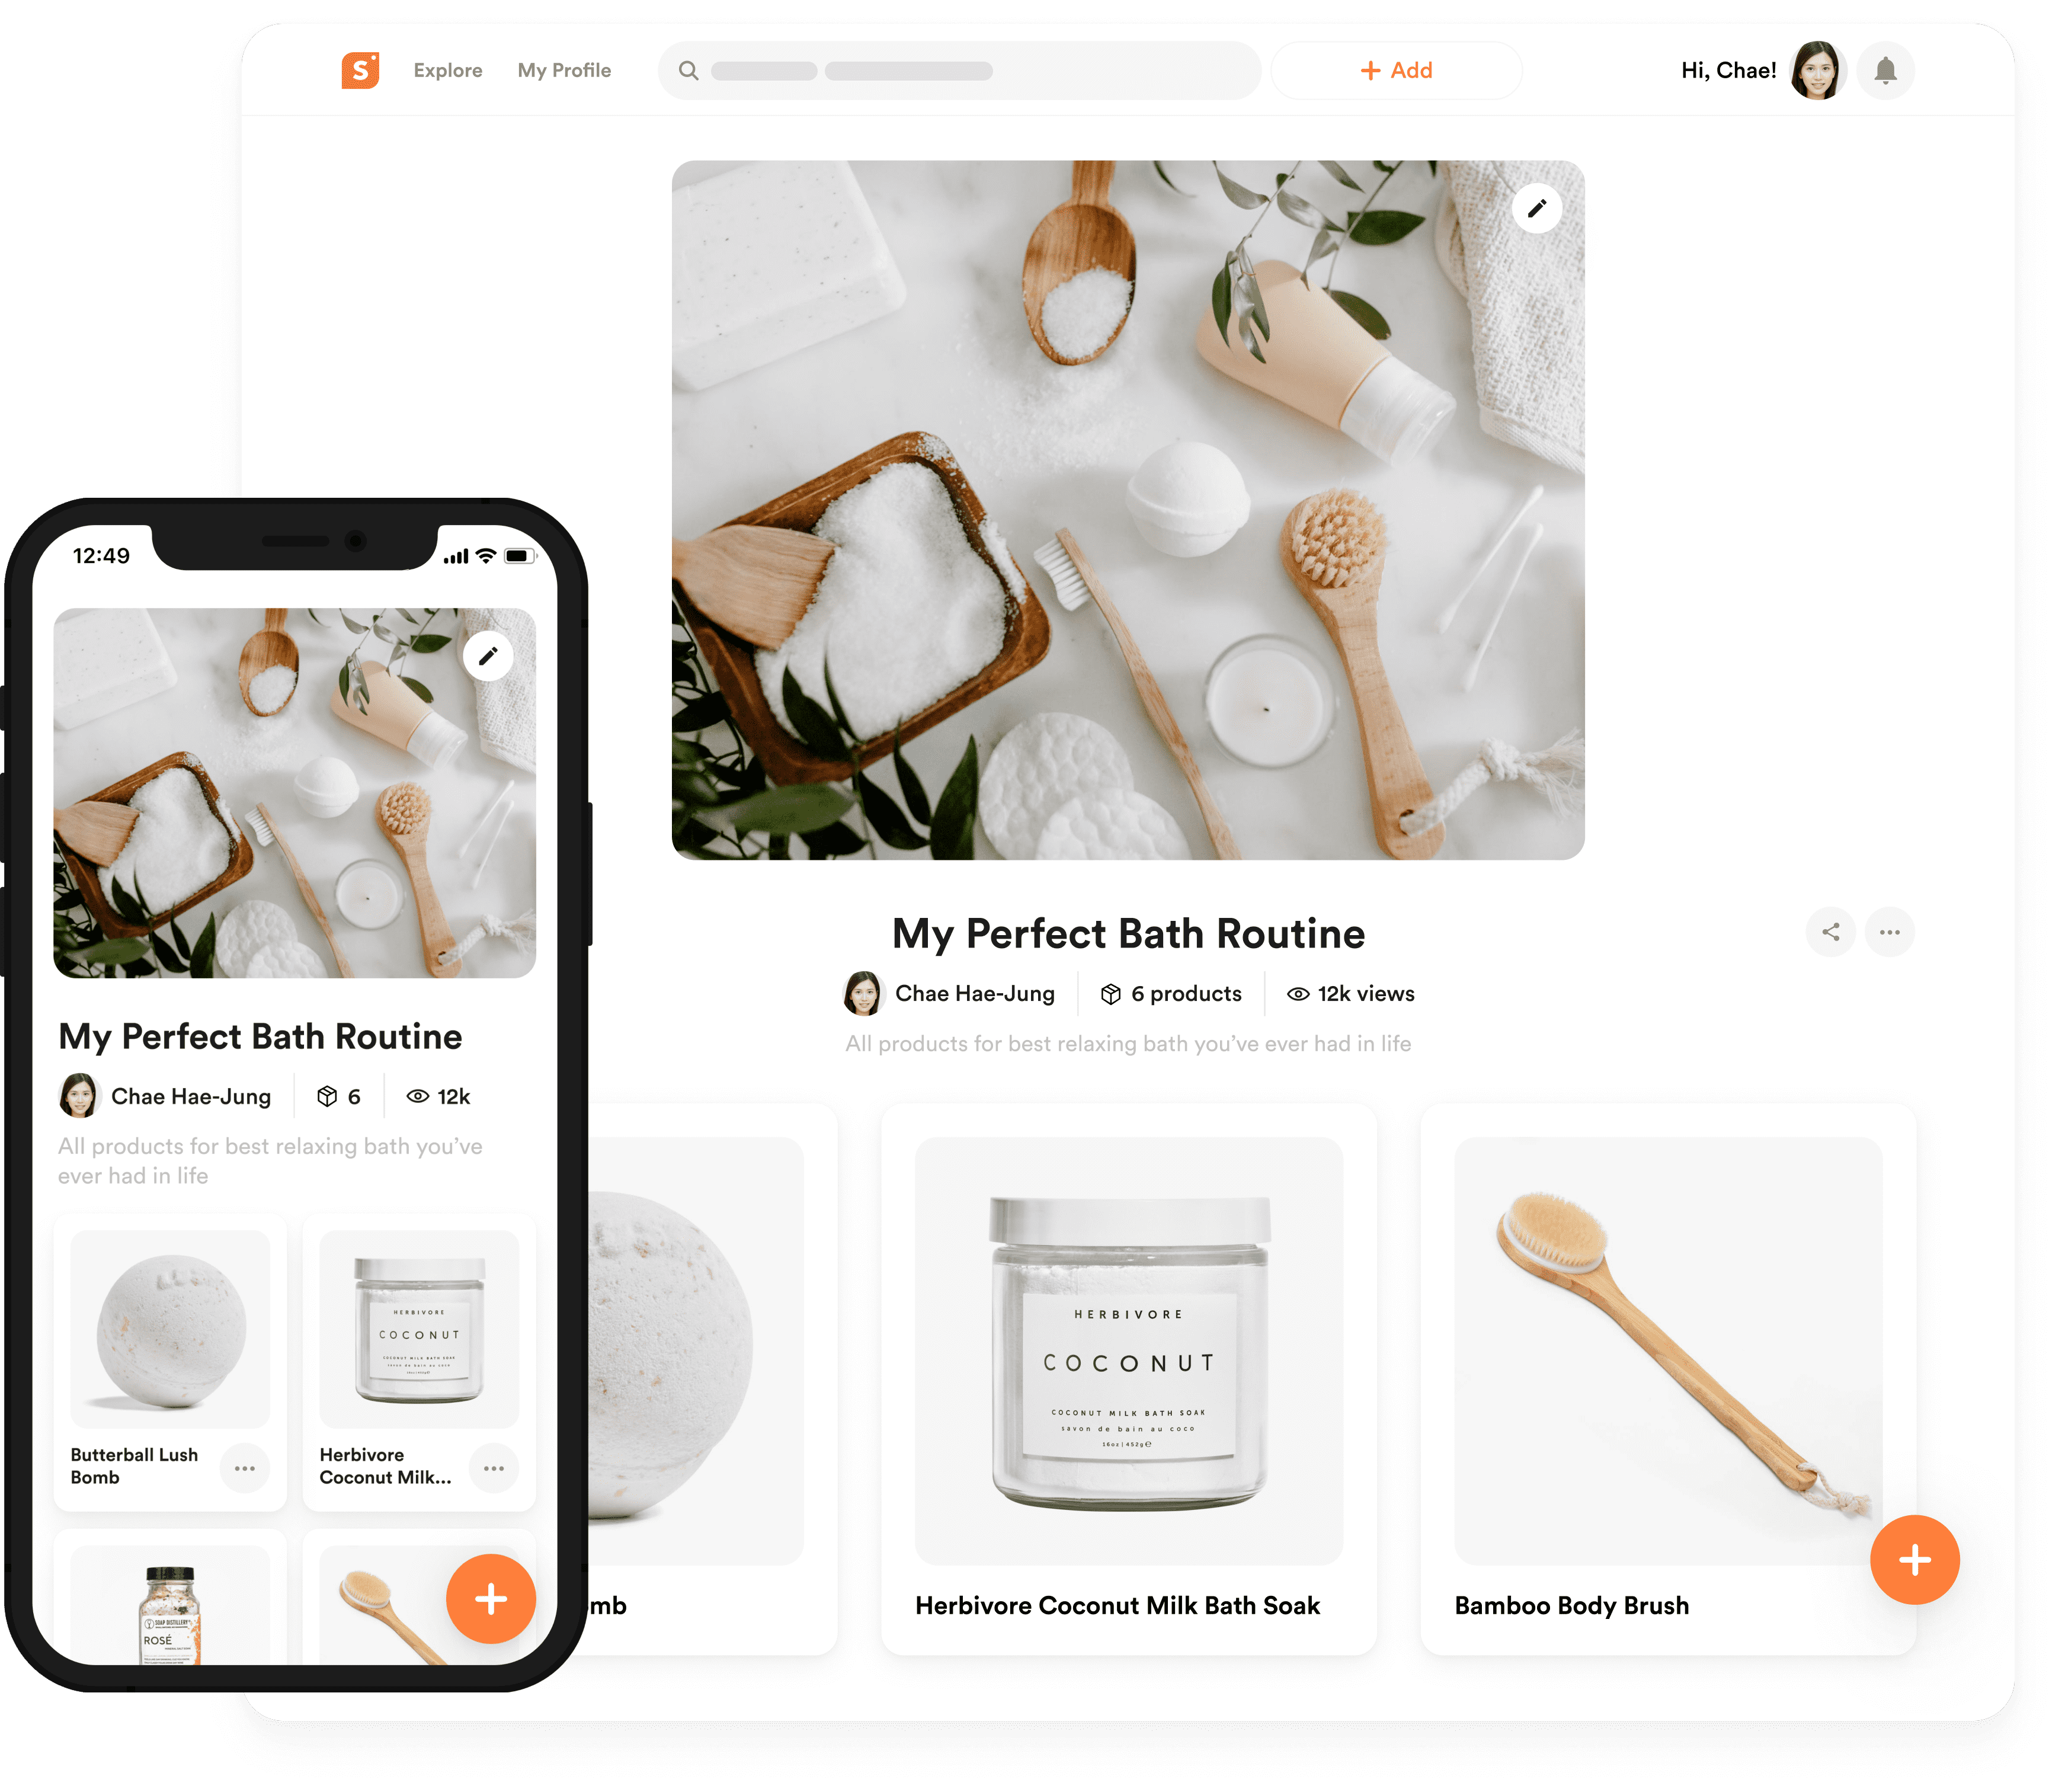 shopper.com collections page template on desktop and on mobile